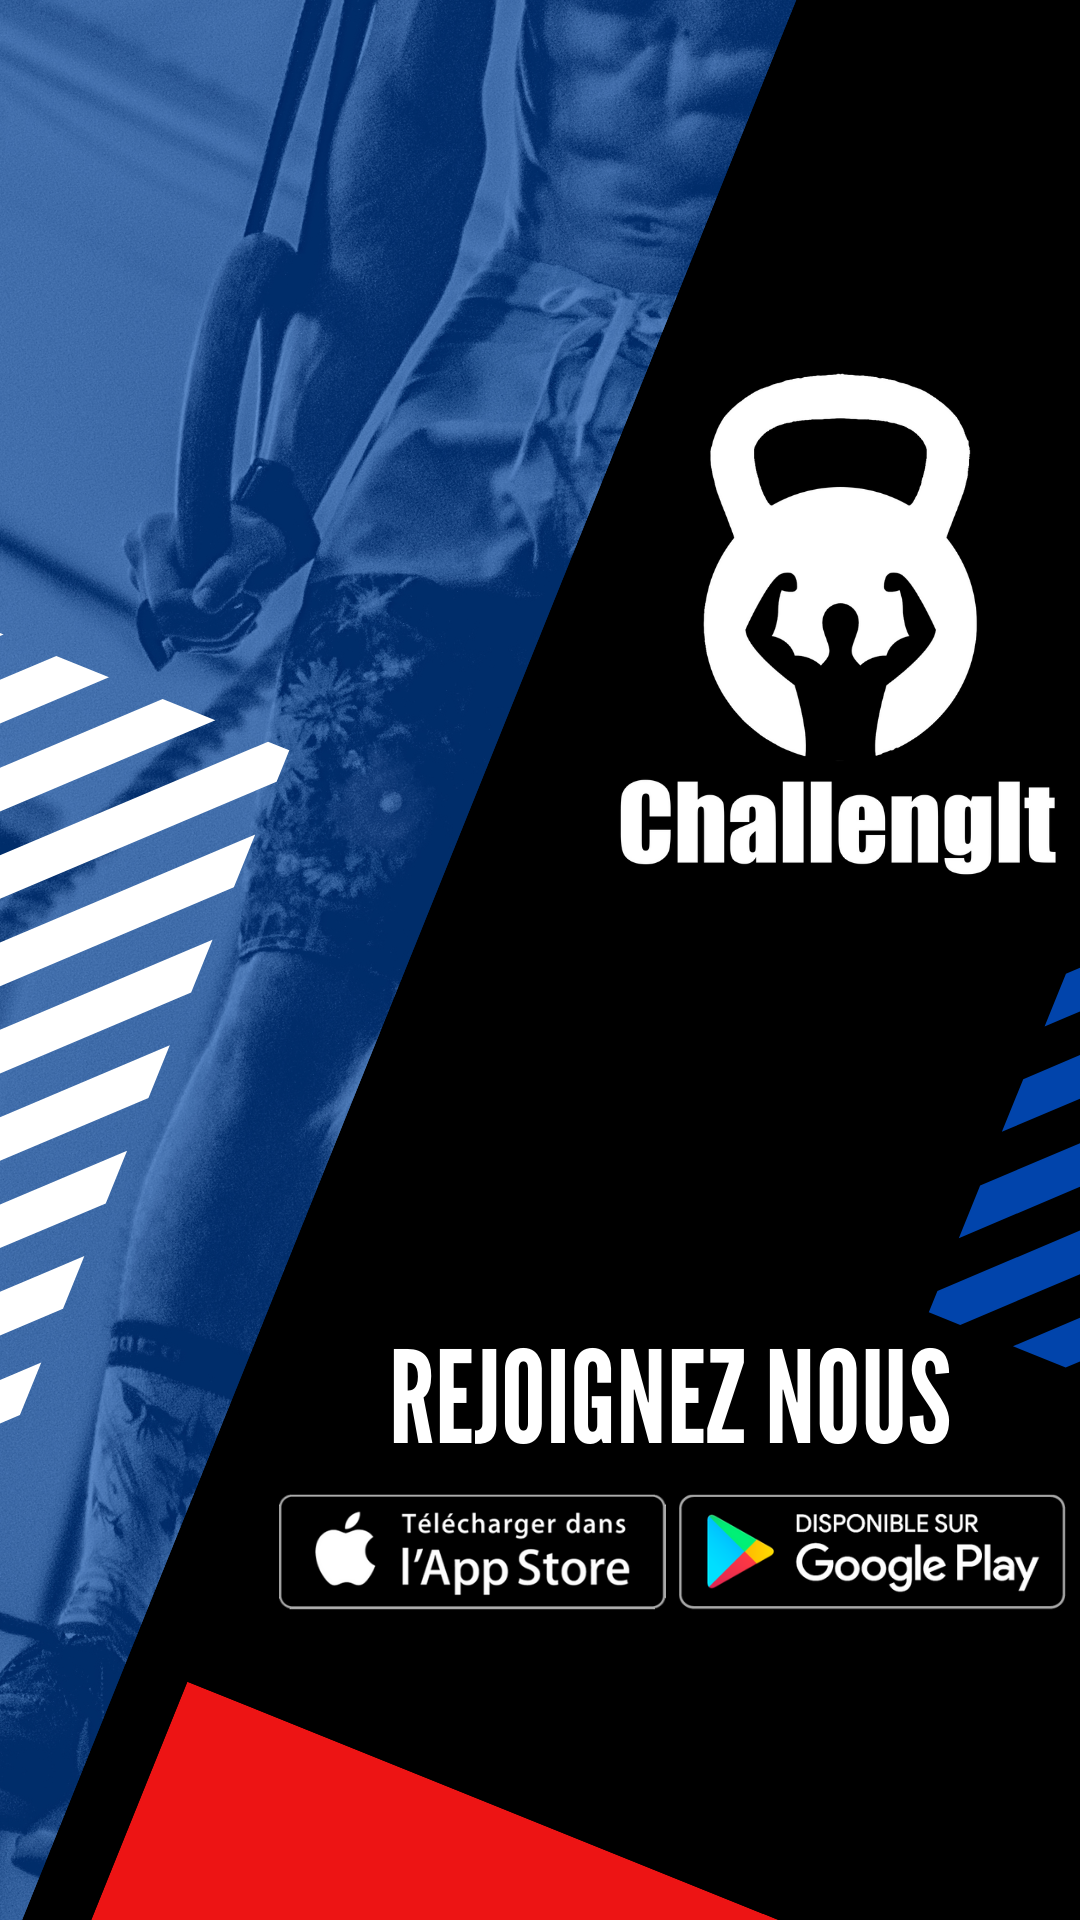 La French Co x ChallengIt : Let's go !